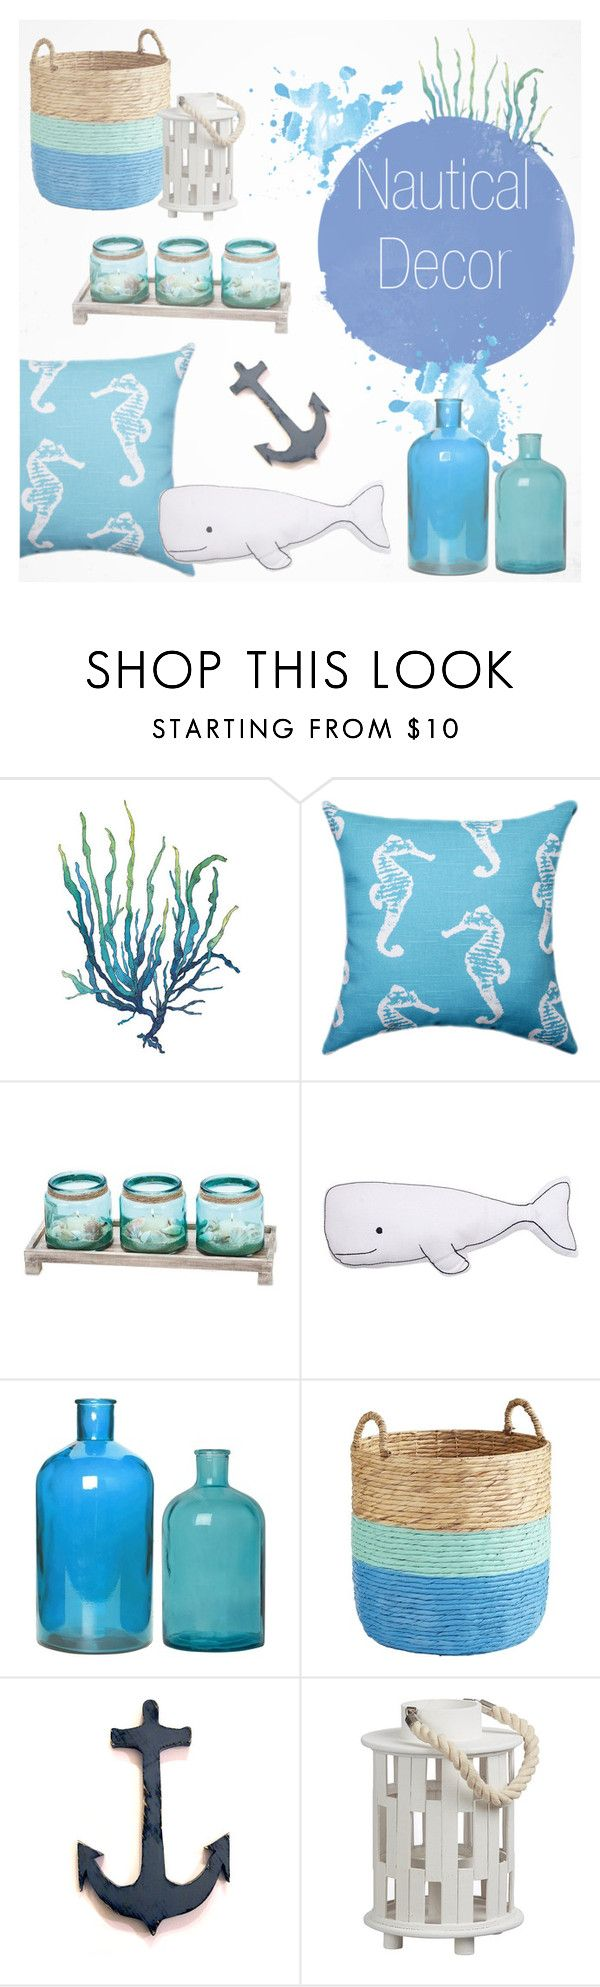 5728 Best Images About Beach House Decor On Pinterest